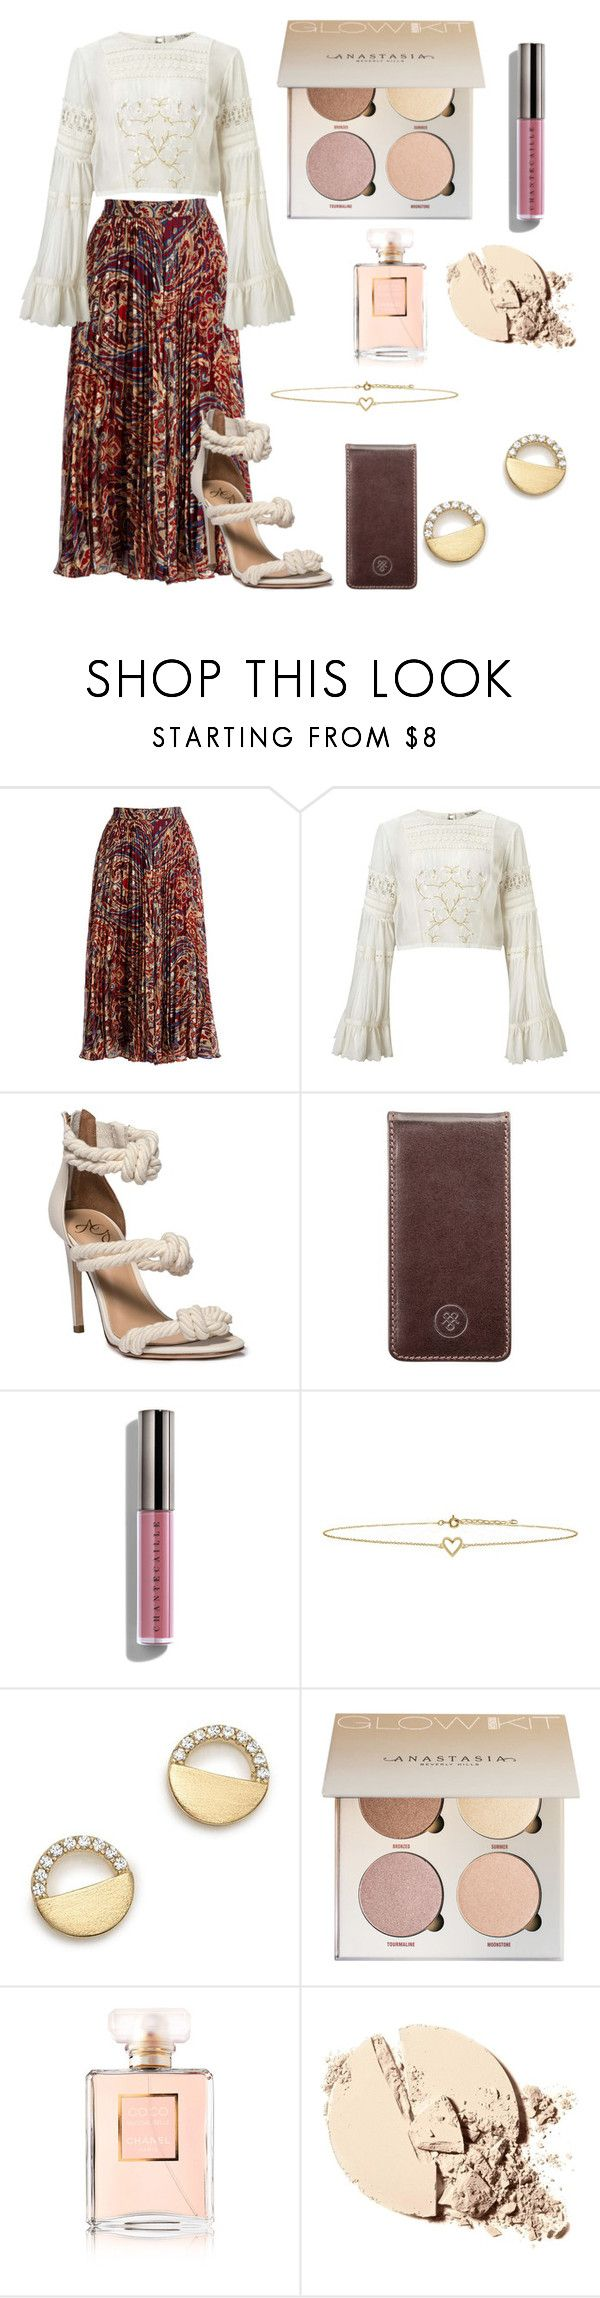 """Hippie Hopeful"" by lavendersky33 ❤ liked on Polyvore featuring Haute Hippie, Miss Selfridge, Maxwell Scott Bags, Chantecaille, Lee Renee, Bloomingdale's and Chanel"